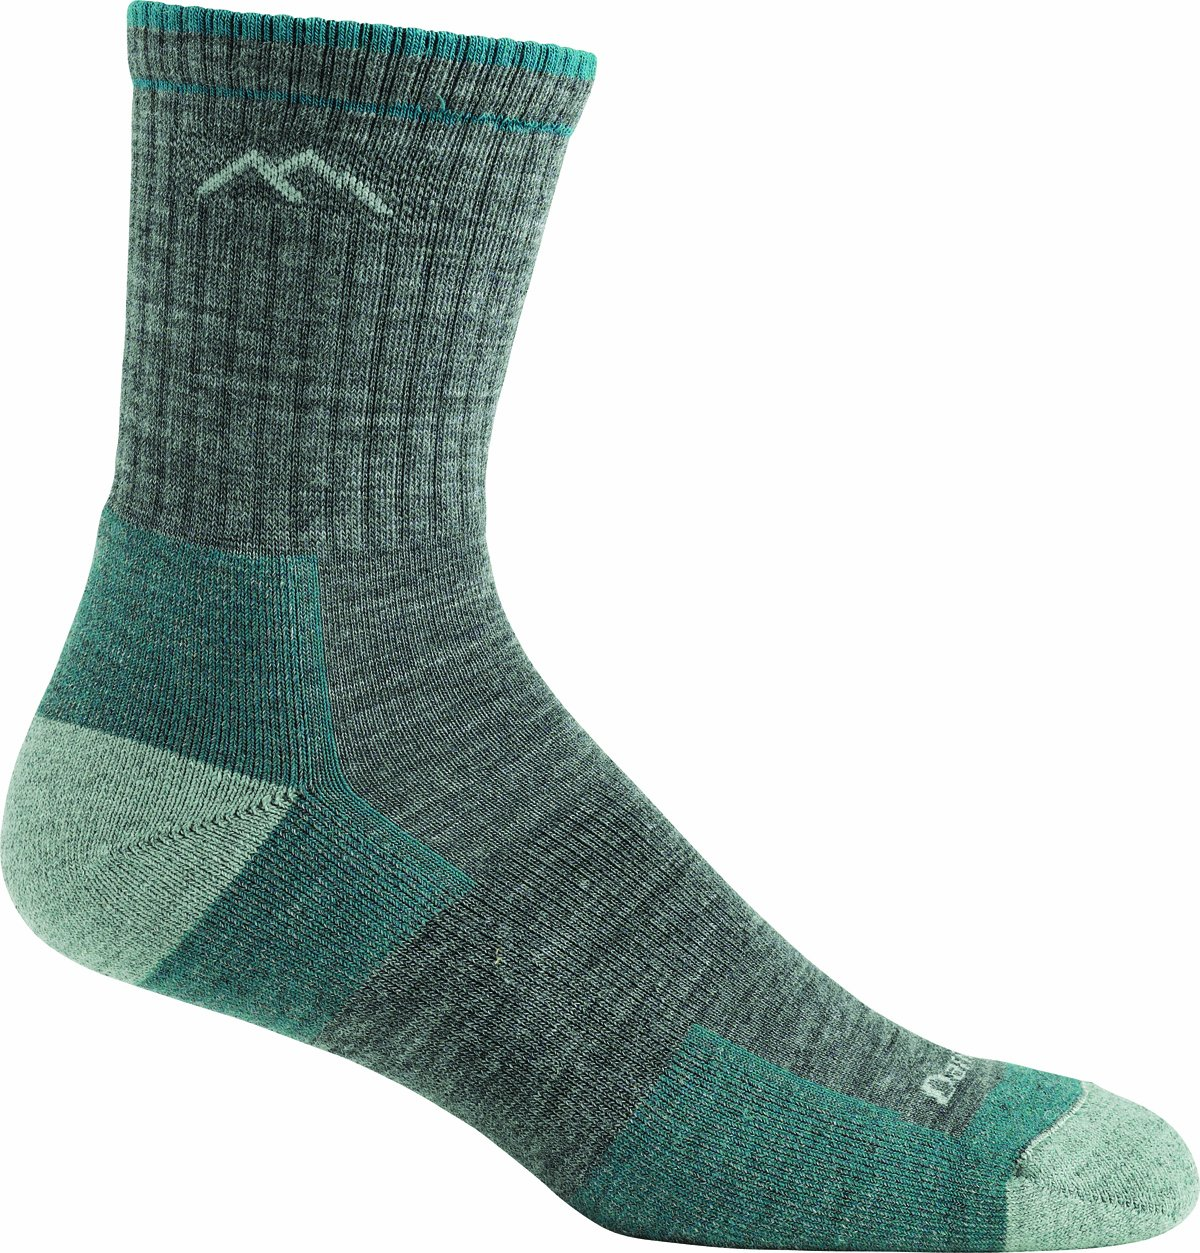 Darn Tough Vermont (1903) Women's Merino Wool Micro Crew Cushion Socks, Slate, Medium by Darn Tough